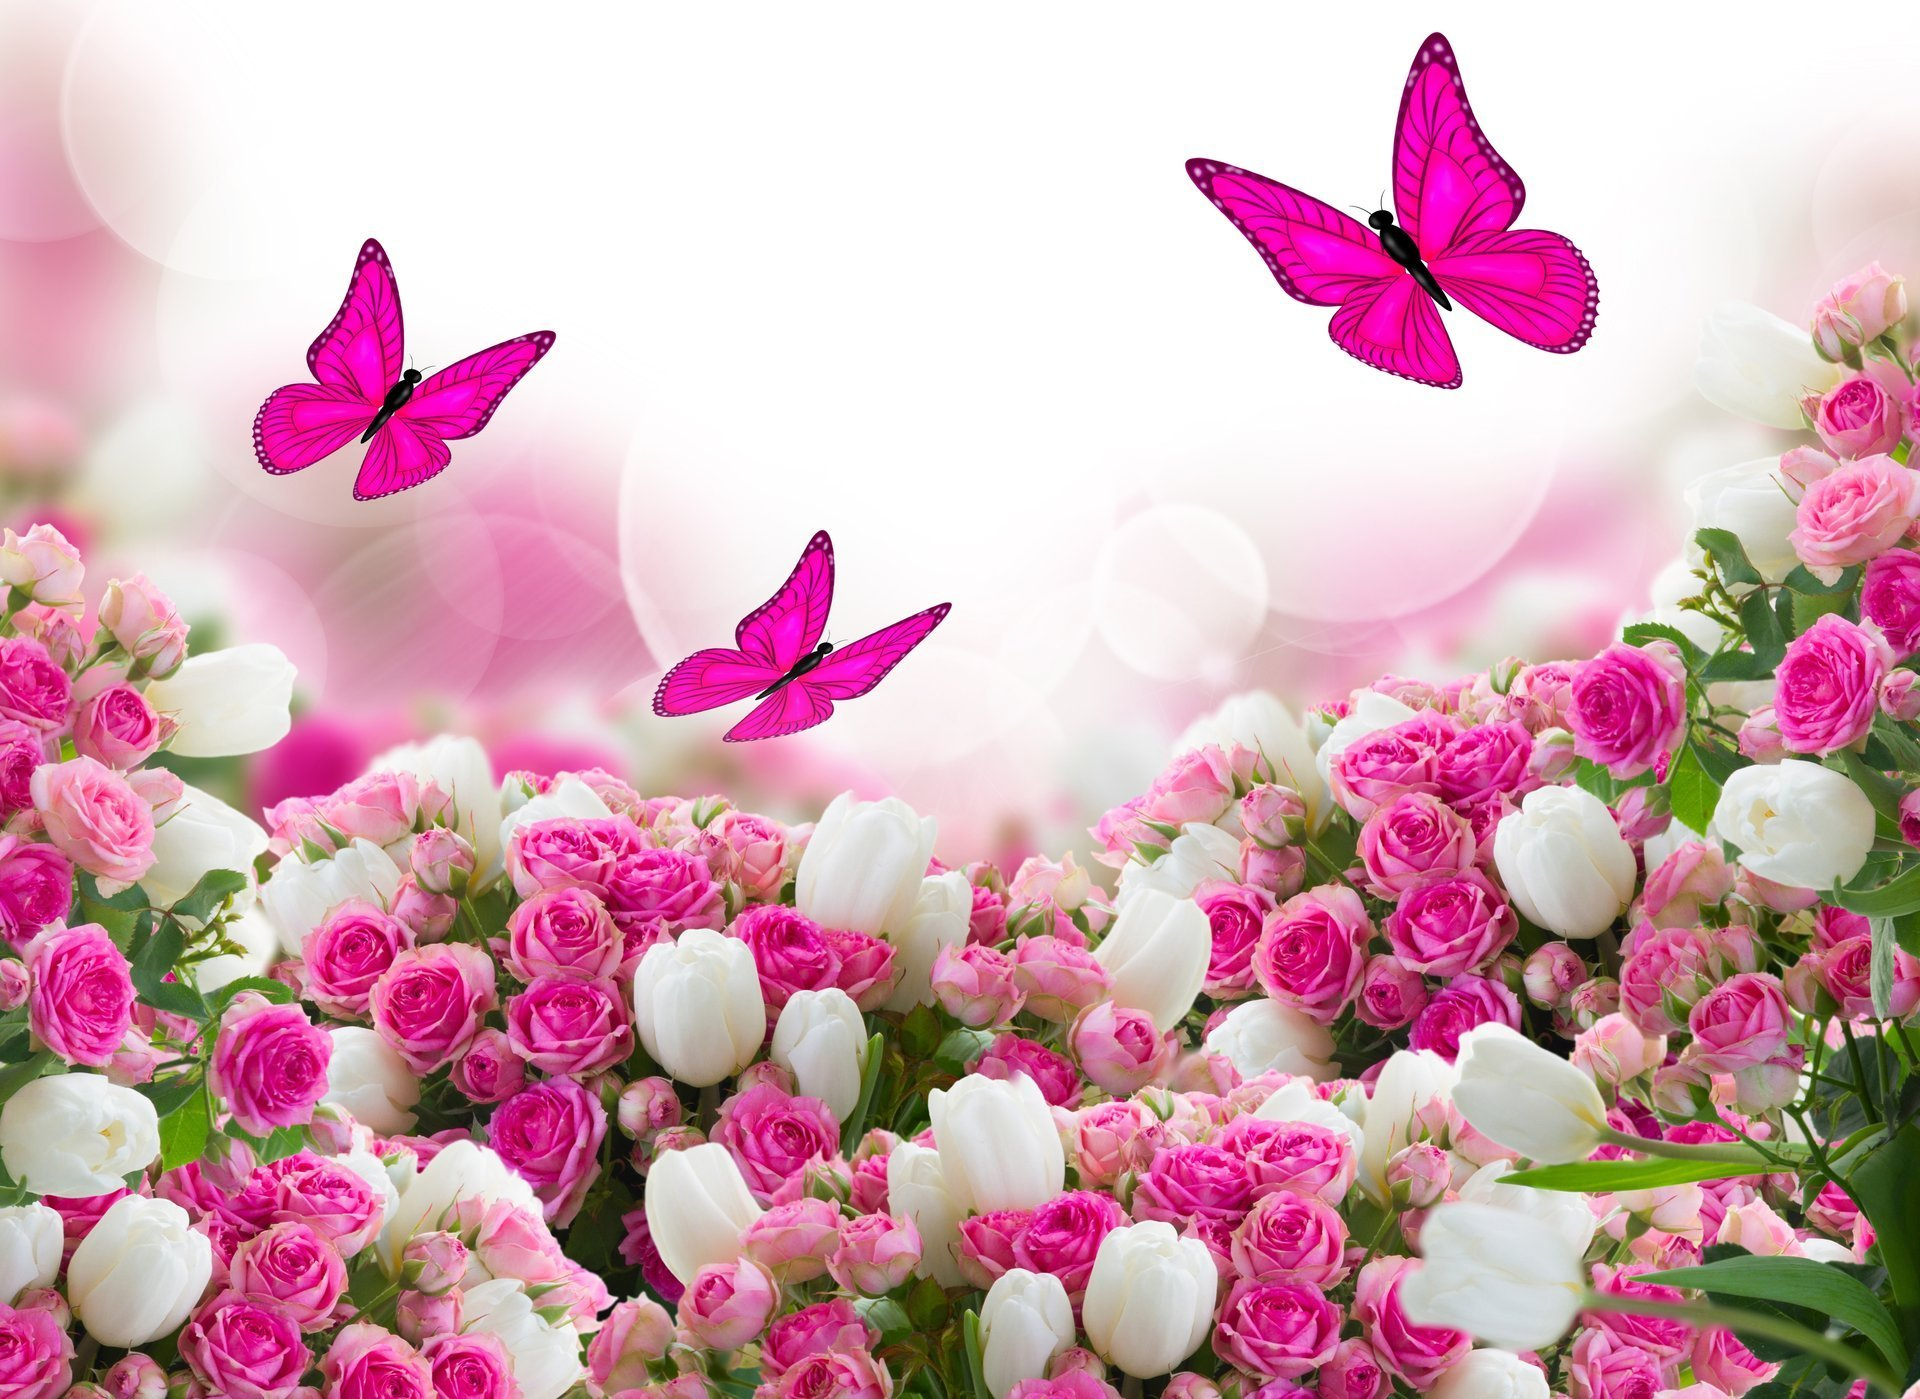 Free Download Roses Tulips Leaves Flower Butterfly Hd Wallpaper